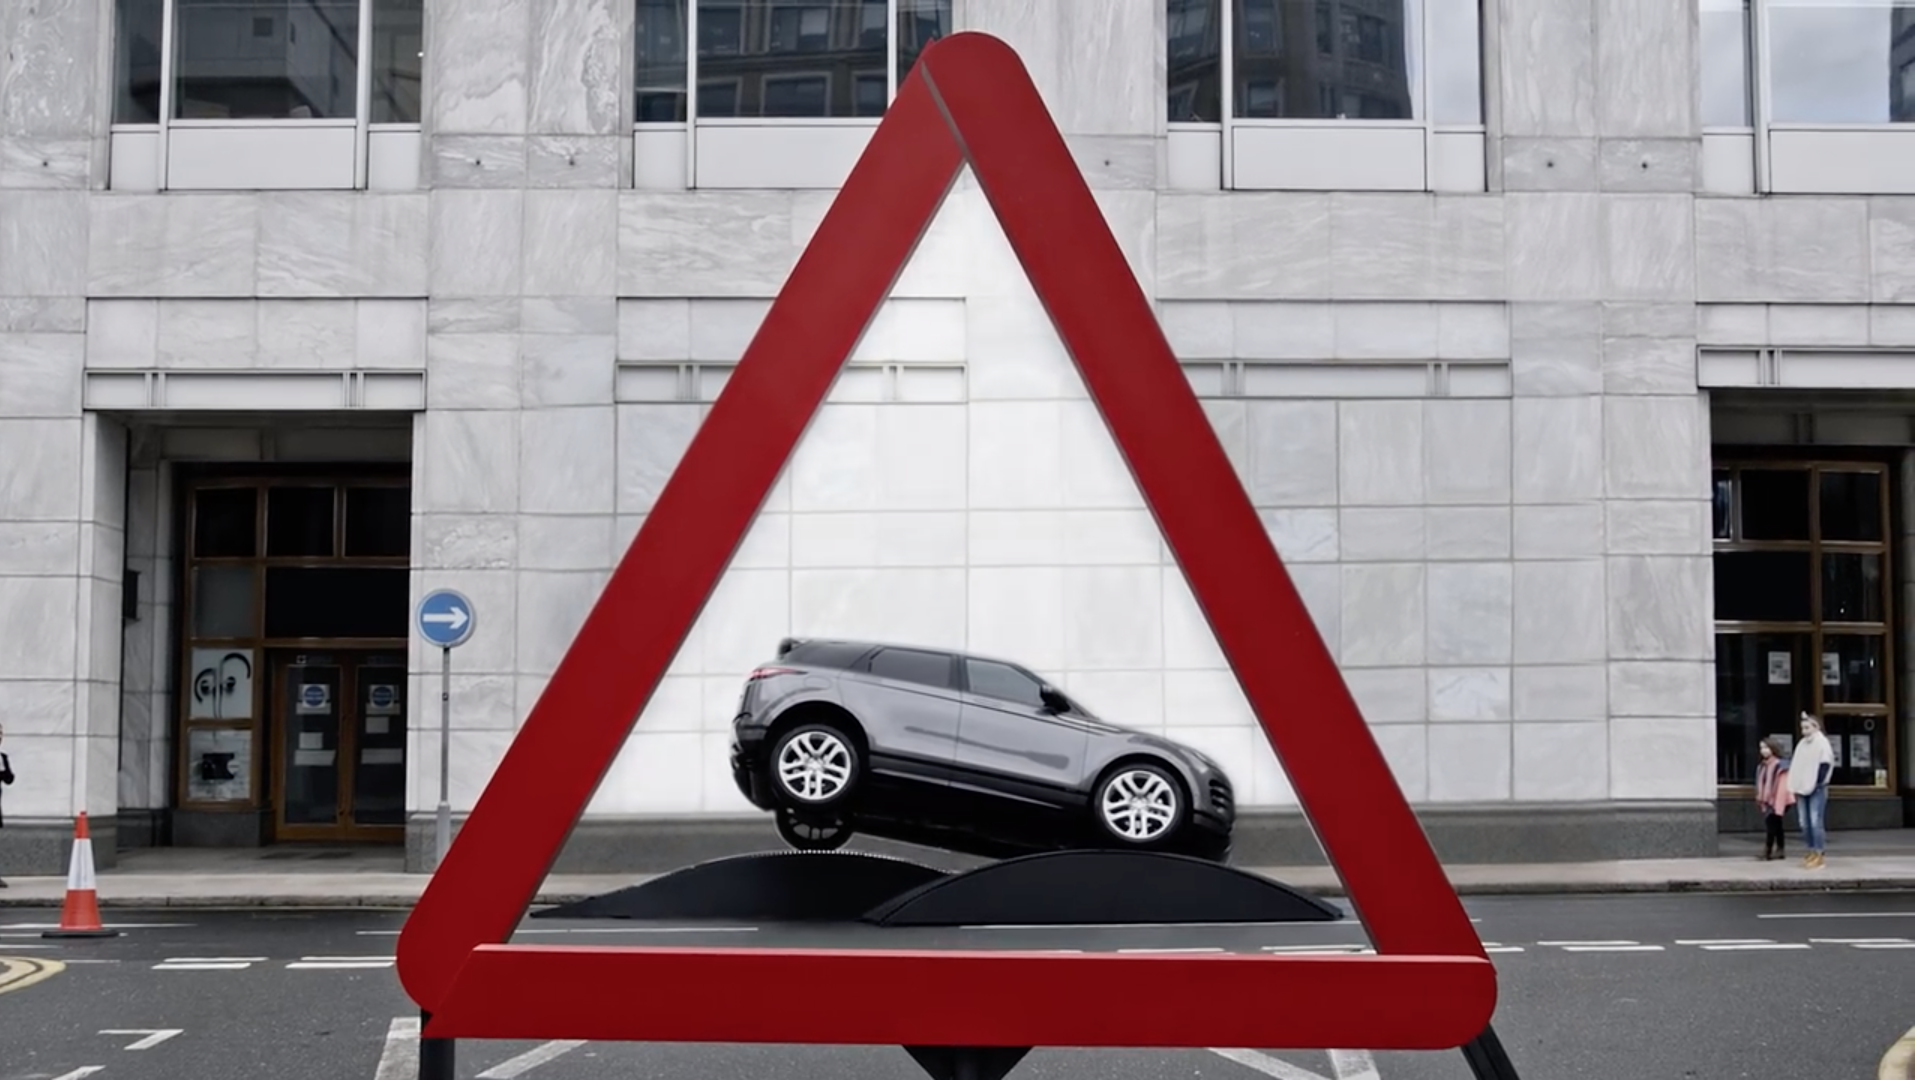 Range Rover recreate road signs in real life with the new Evoque